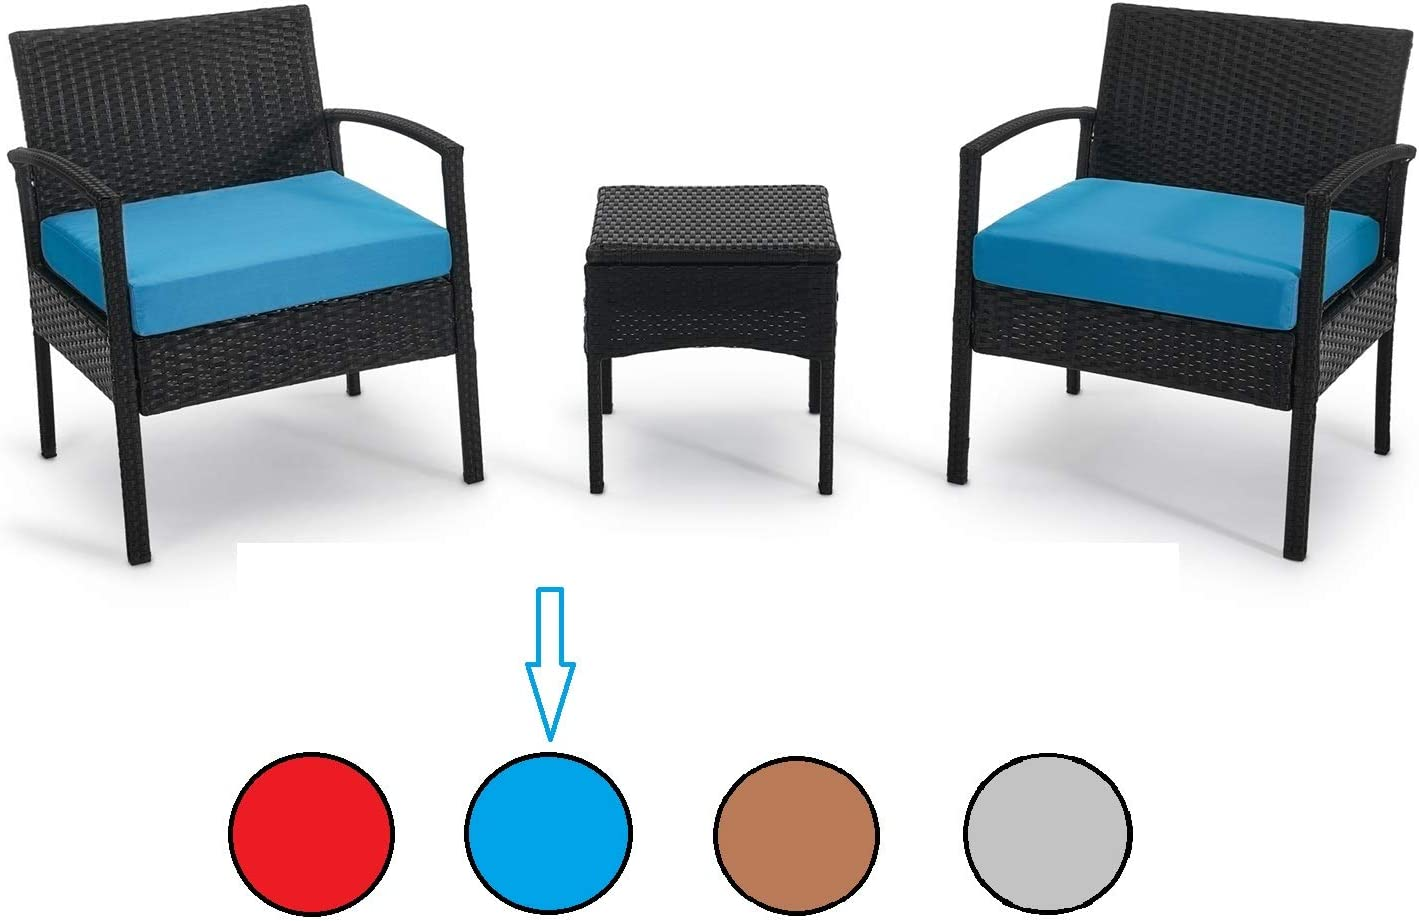 PROHIKER 3 PCS Patio Rattan Conversation Chair Set, 3 PCS Patio Wicker Rattan Furniture Set, Patio Wicker Rattan Table